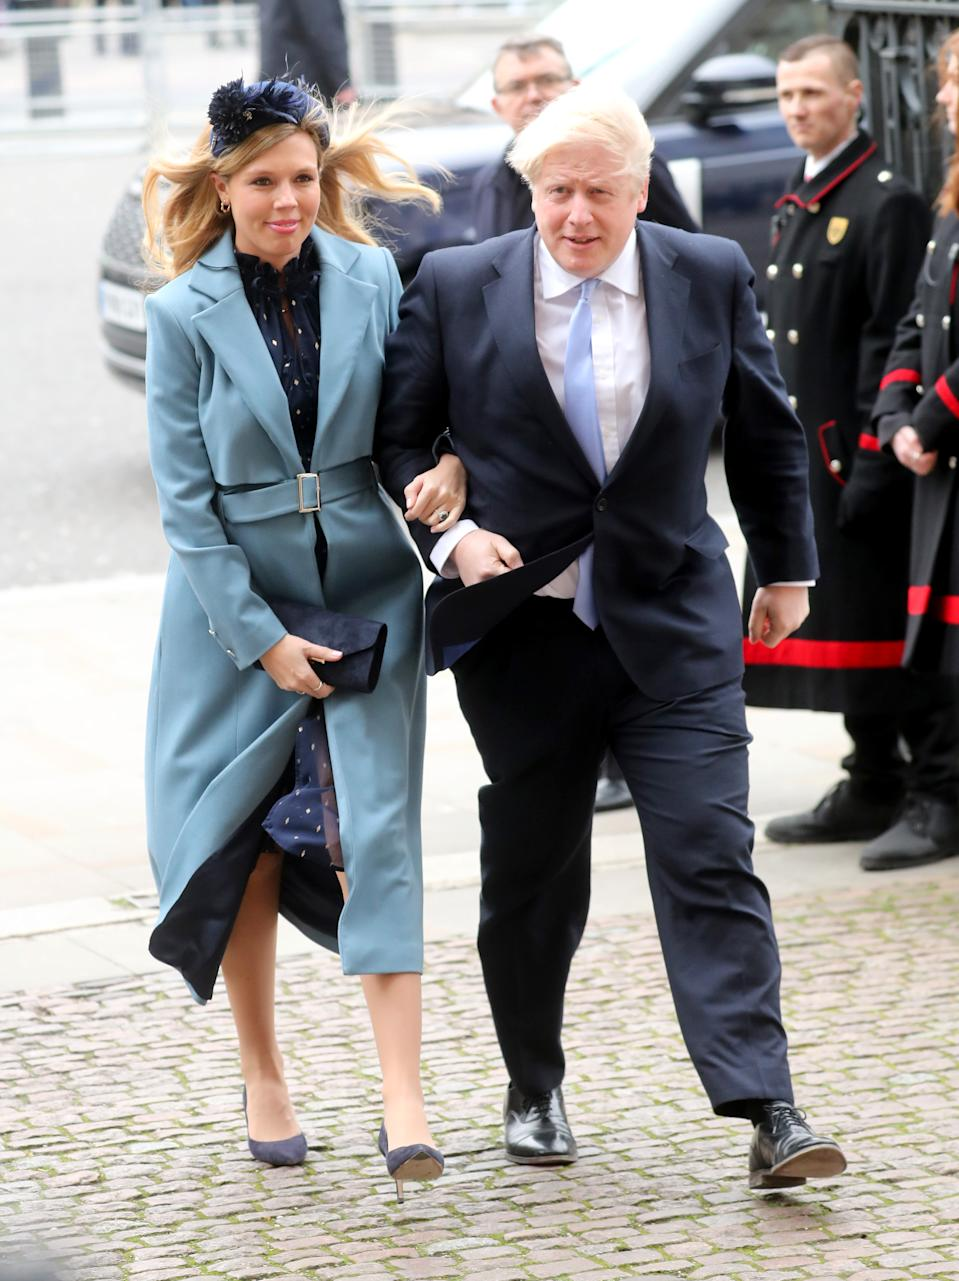 Prime Minister Boris Johnson and Carrie Symonds at the Commonwealth Day Service 2020 at Westminster Abbey on March 9. (Getty Images)